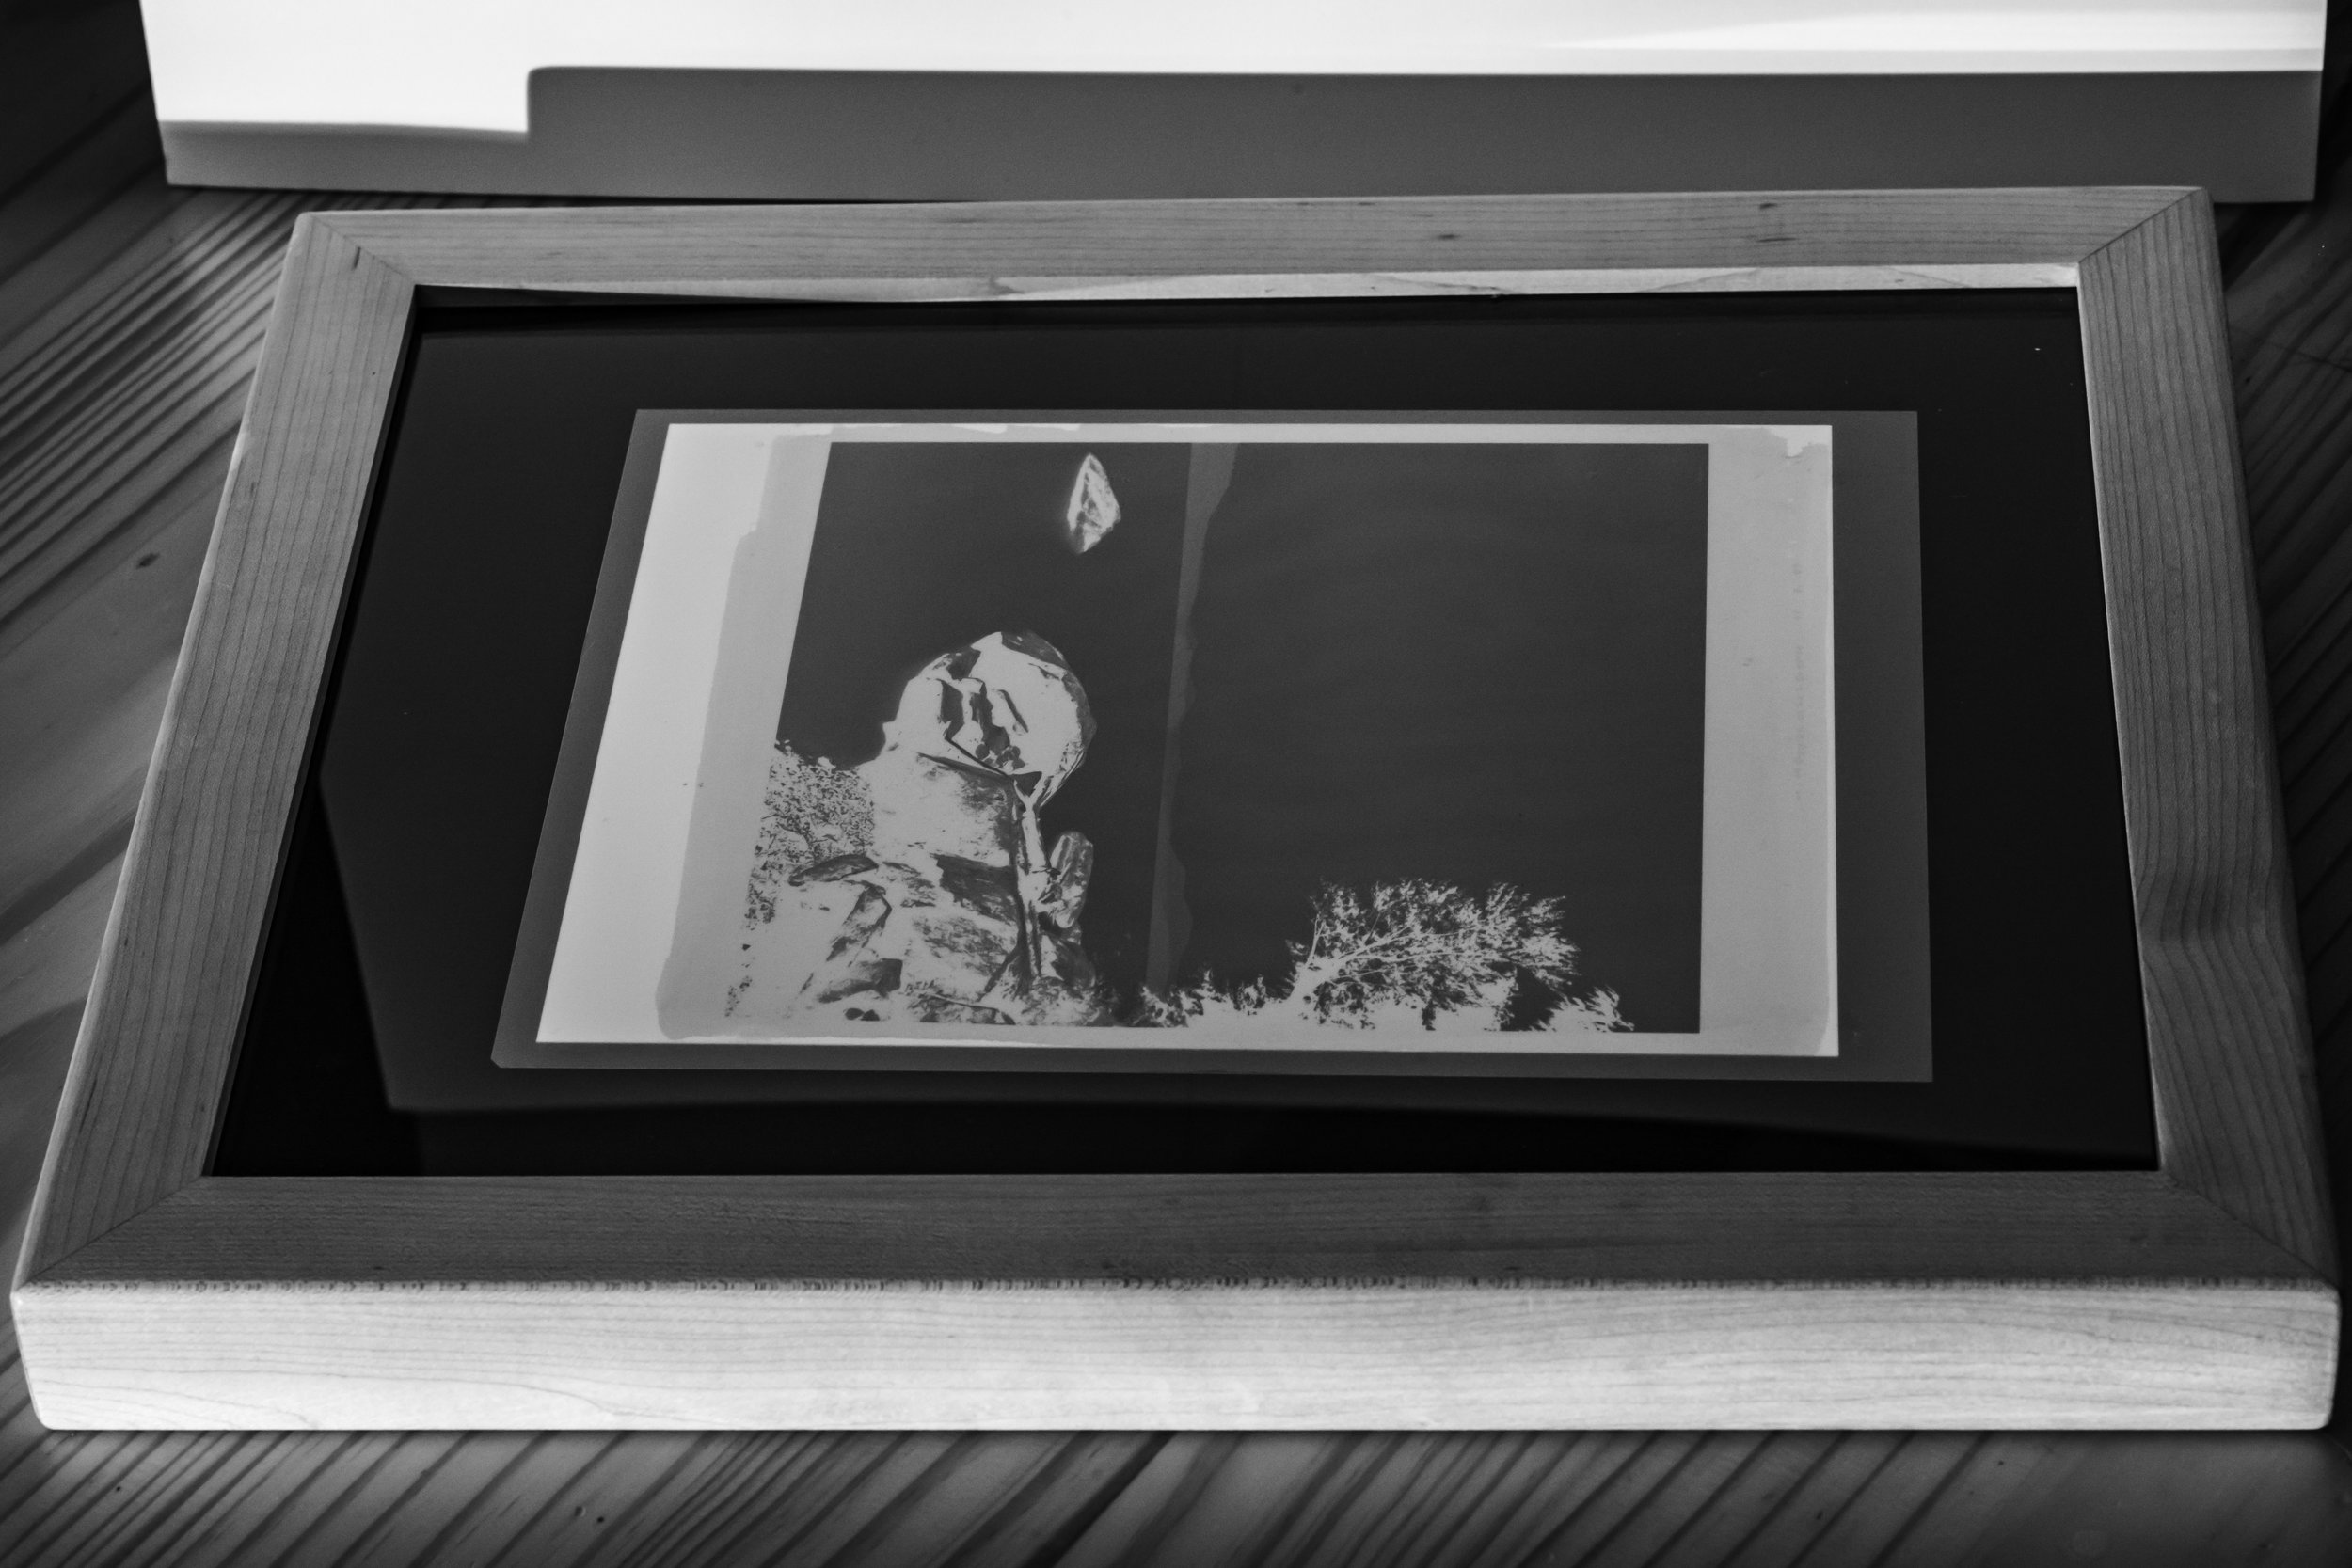 Exposure, Part III: - The print is now ready to be exposed. Platinum Palladium prints are sensitive to UV light, so the print needs to be exposed to sun light or in a UV exposure box.I prefer to use an exposure box for the consistency.